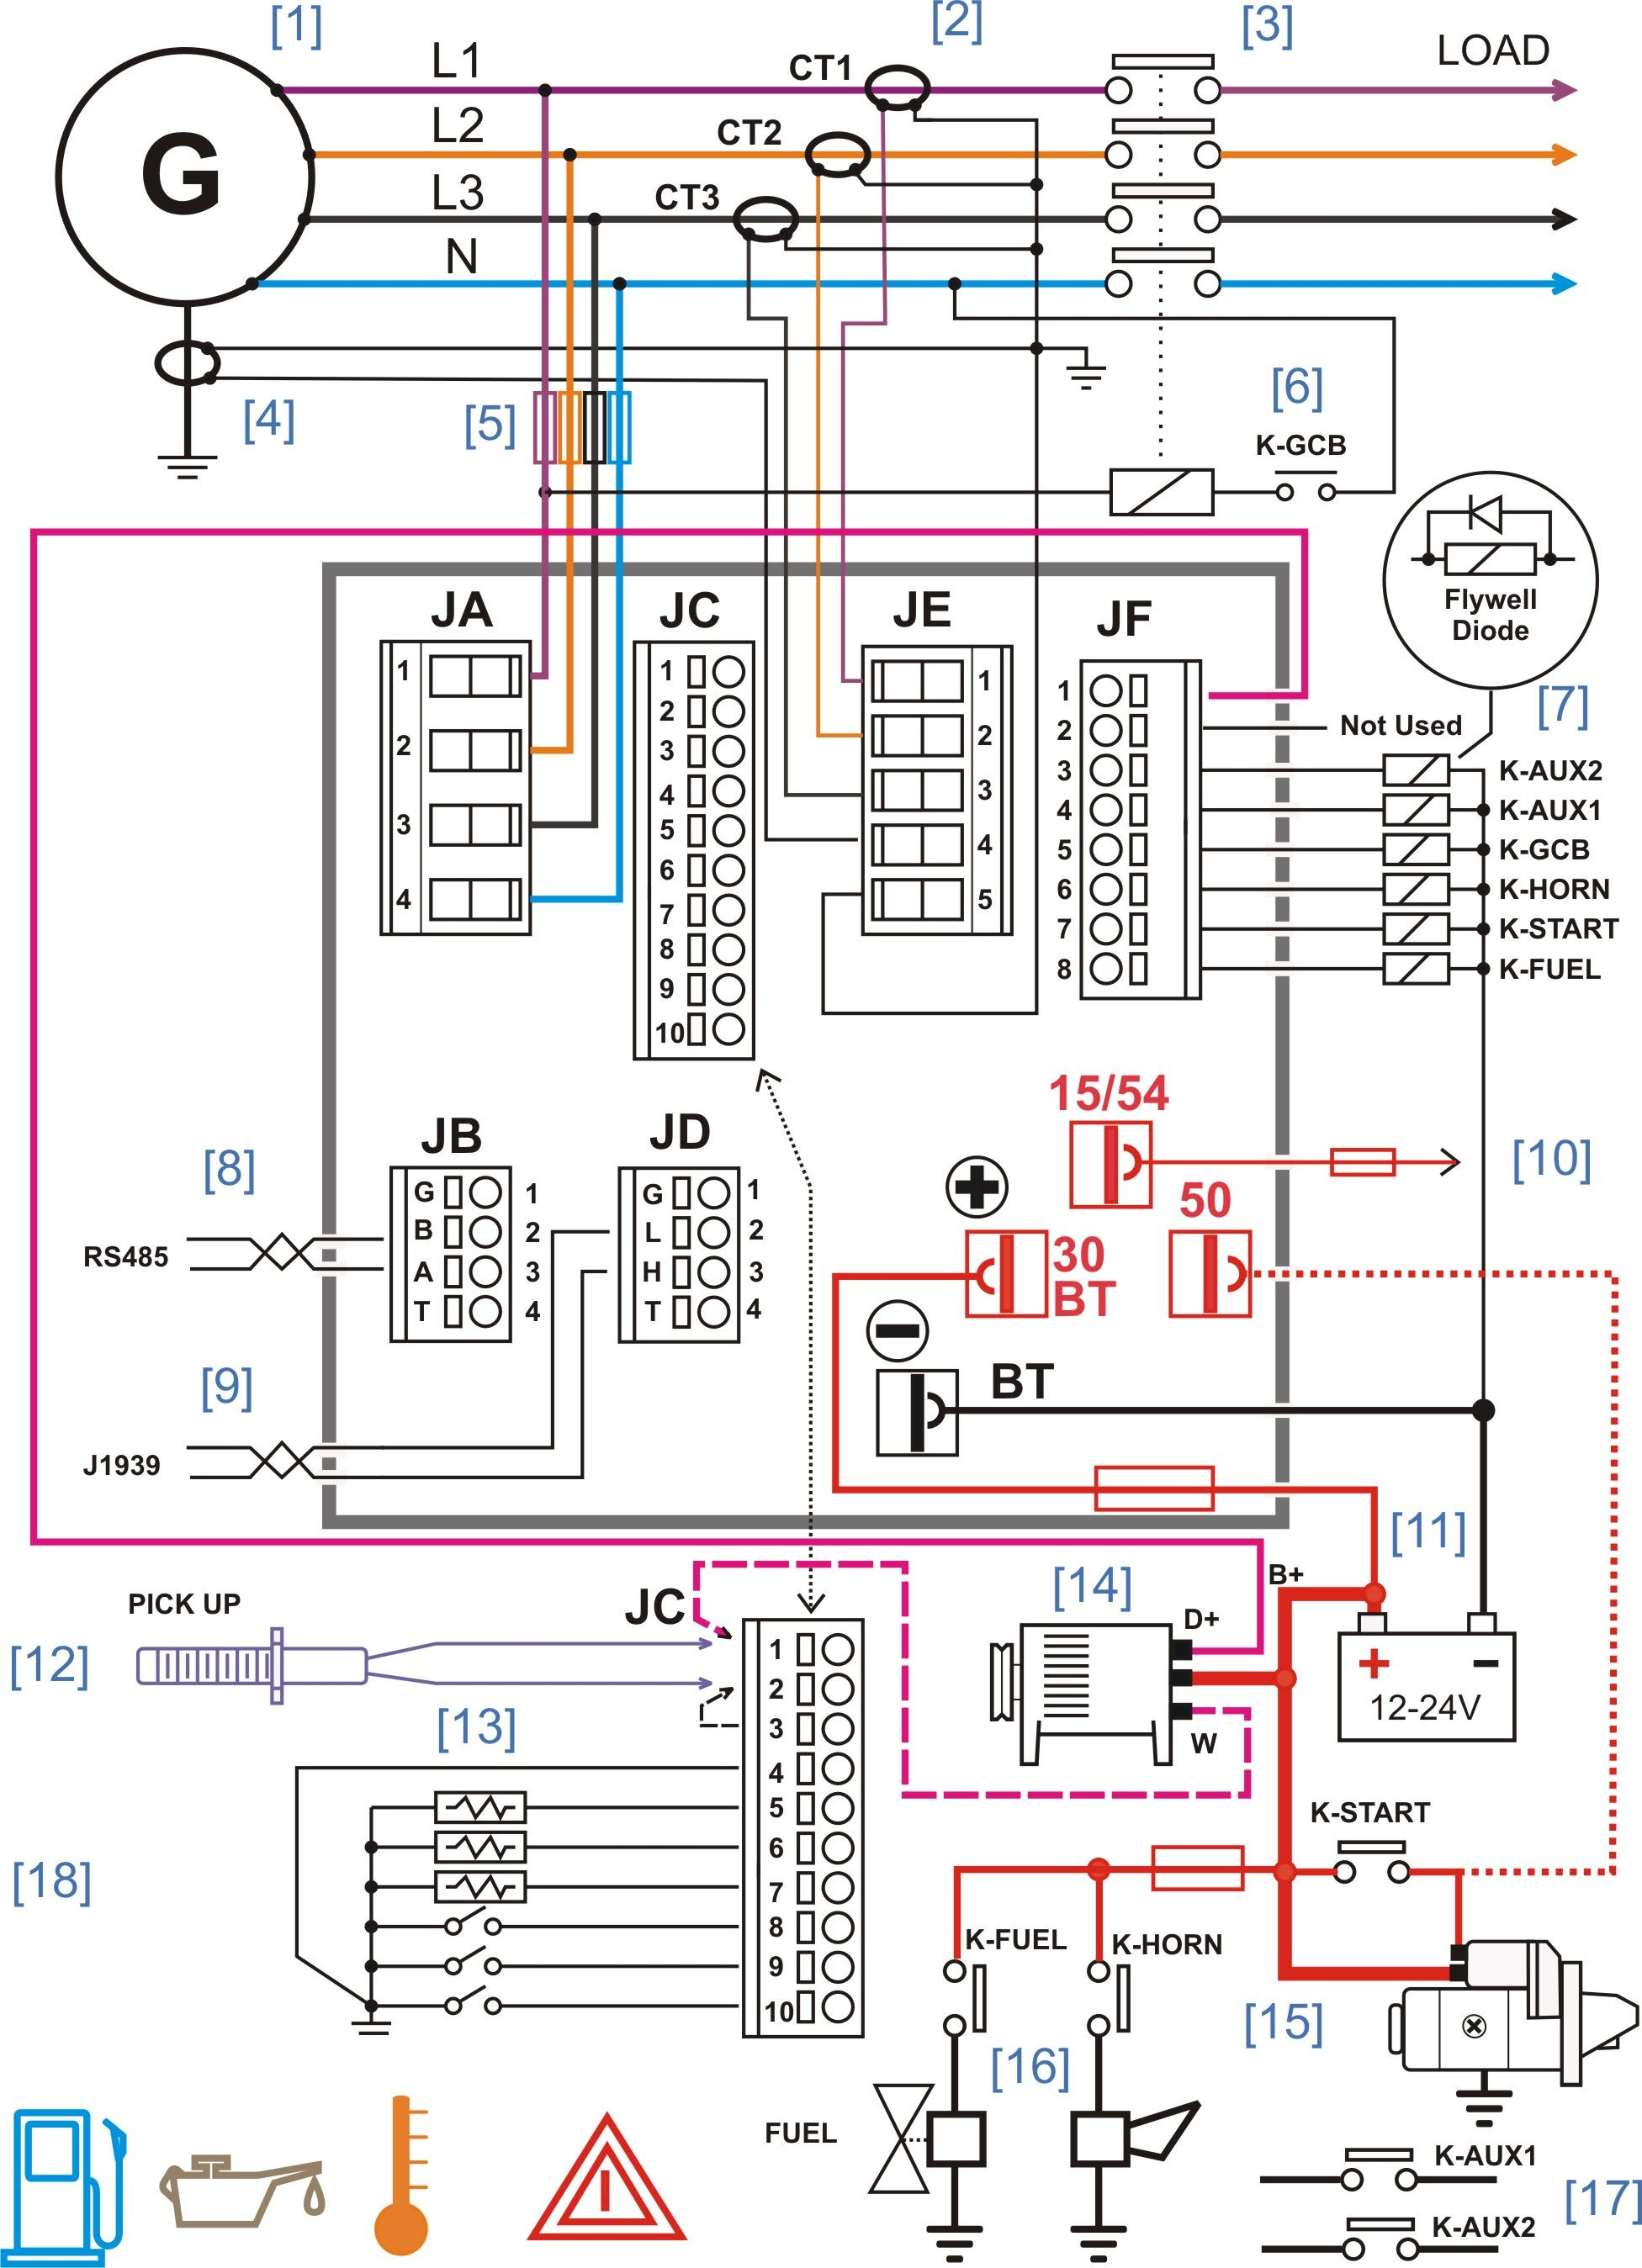 Motor Control Wiring Diagram Symbols Rheem Electric Water Heater Thermostat Panel All Data